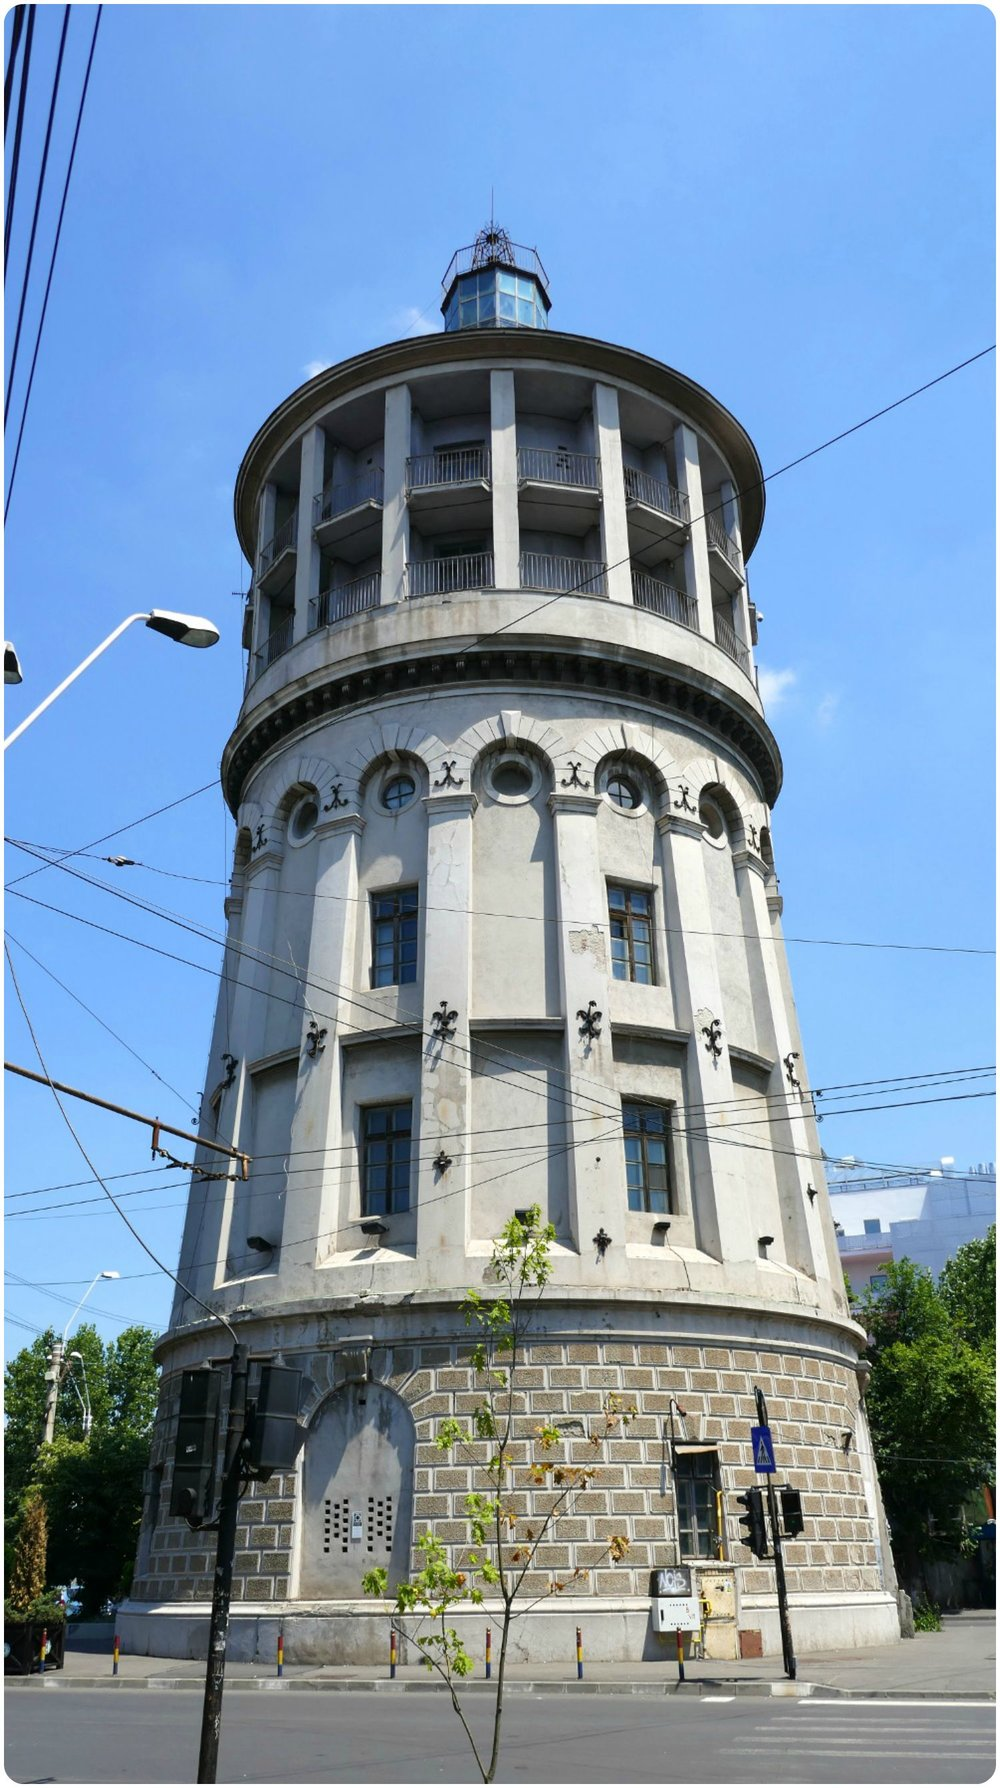 The Fire Tower has a long history in Bucharest.